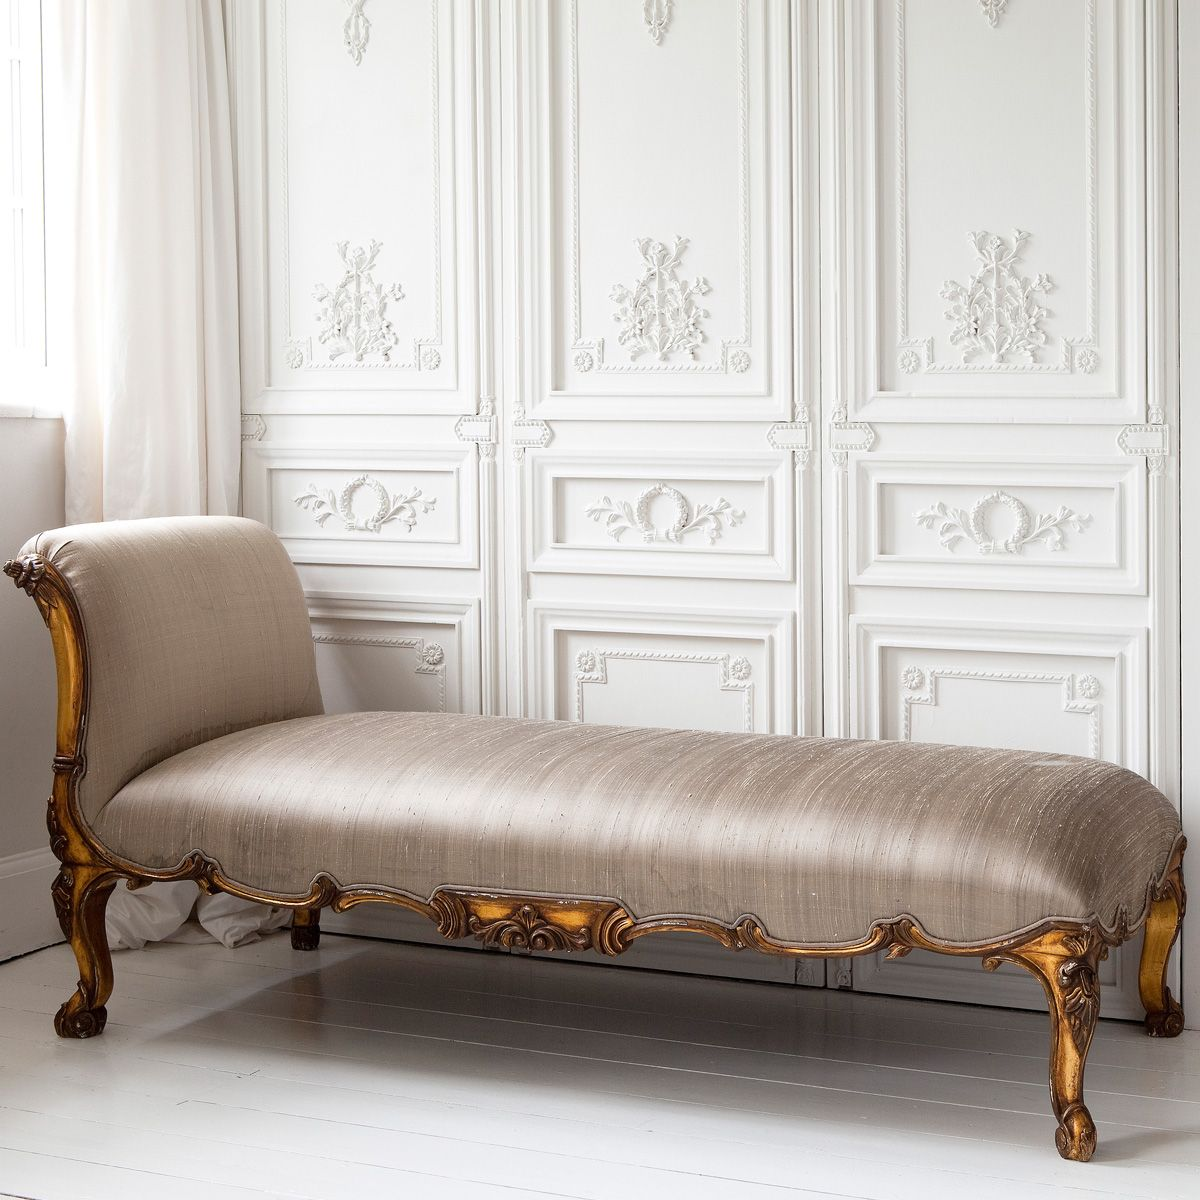 Versailles Gold Chaise Longue French Bedrooms Chaise Longue And Versailles